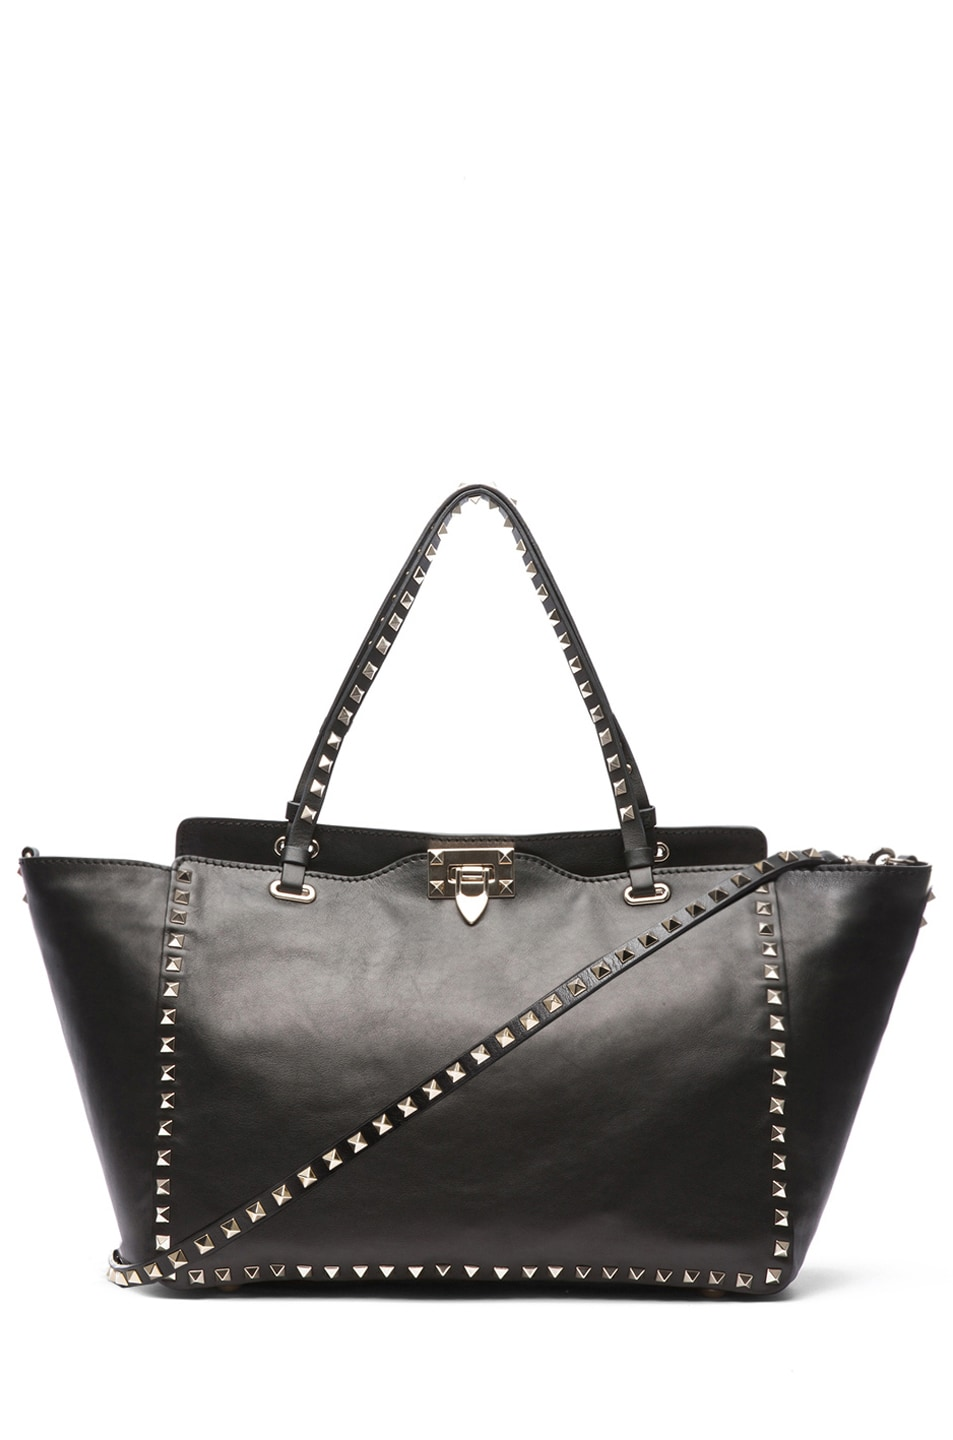 Image 1 of Valentino Medium Rockstud Trapeze Tote in Black